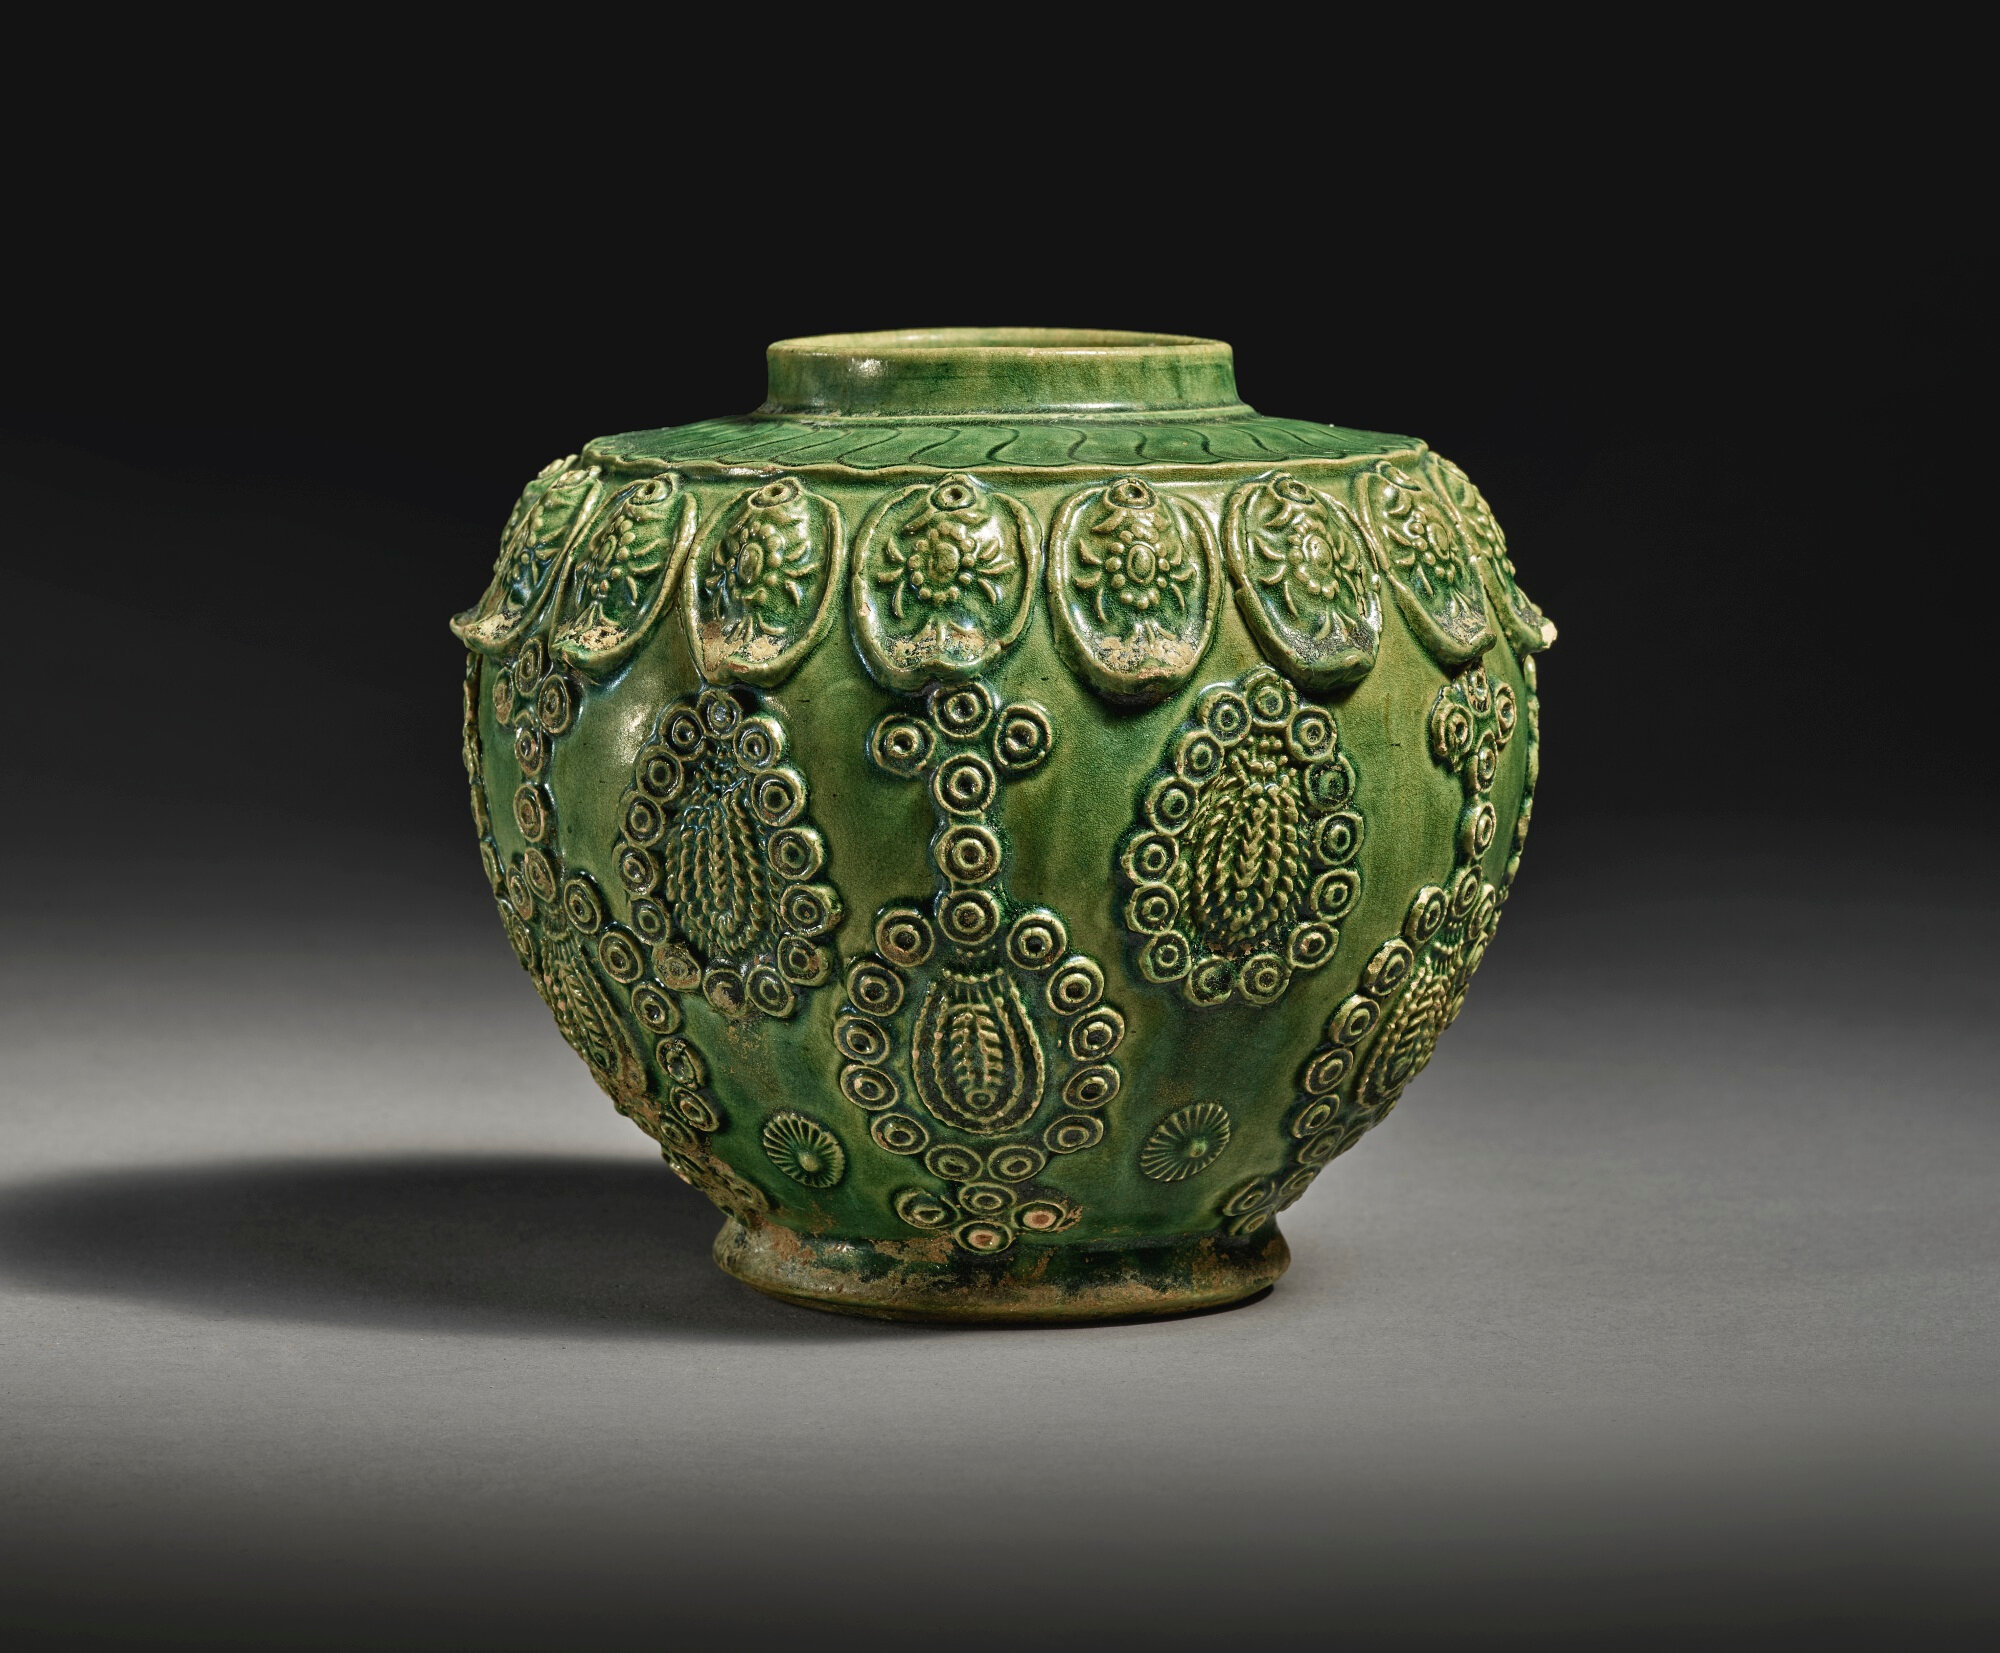 A rare molded green-glazed pottery jar, late Tang-Liao dynasty